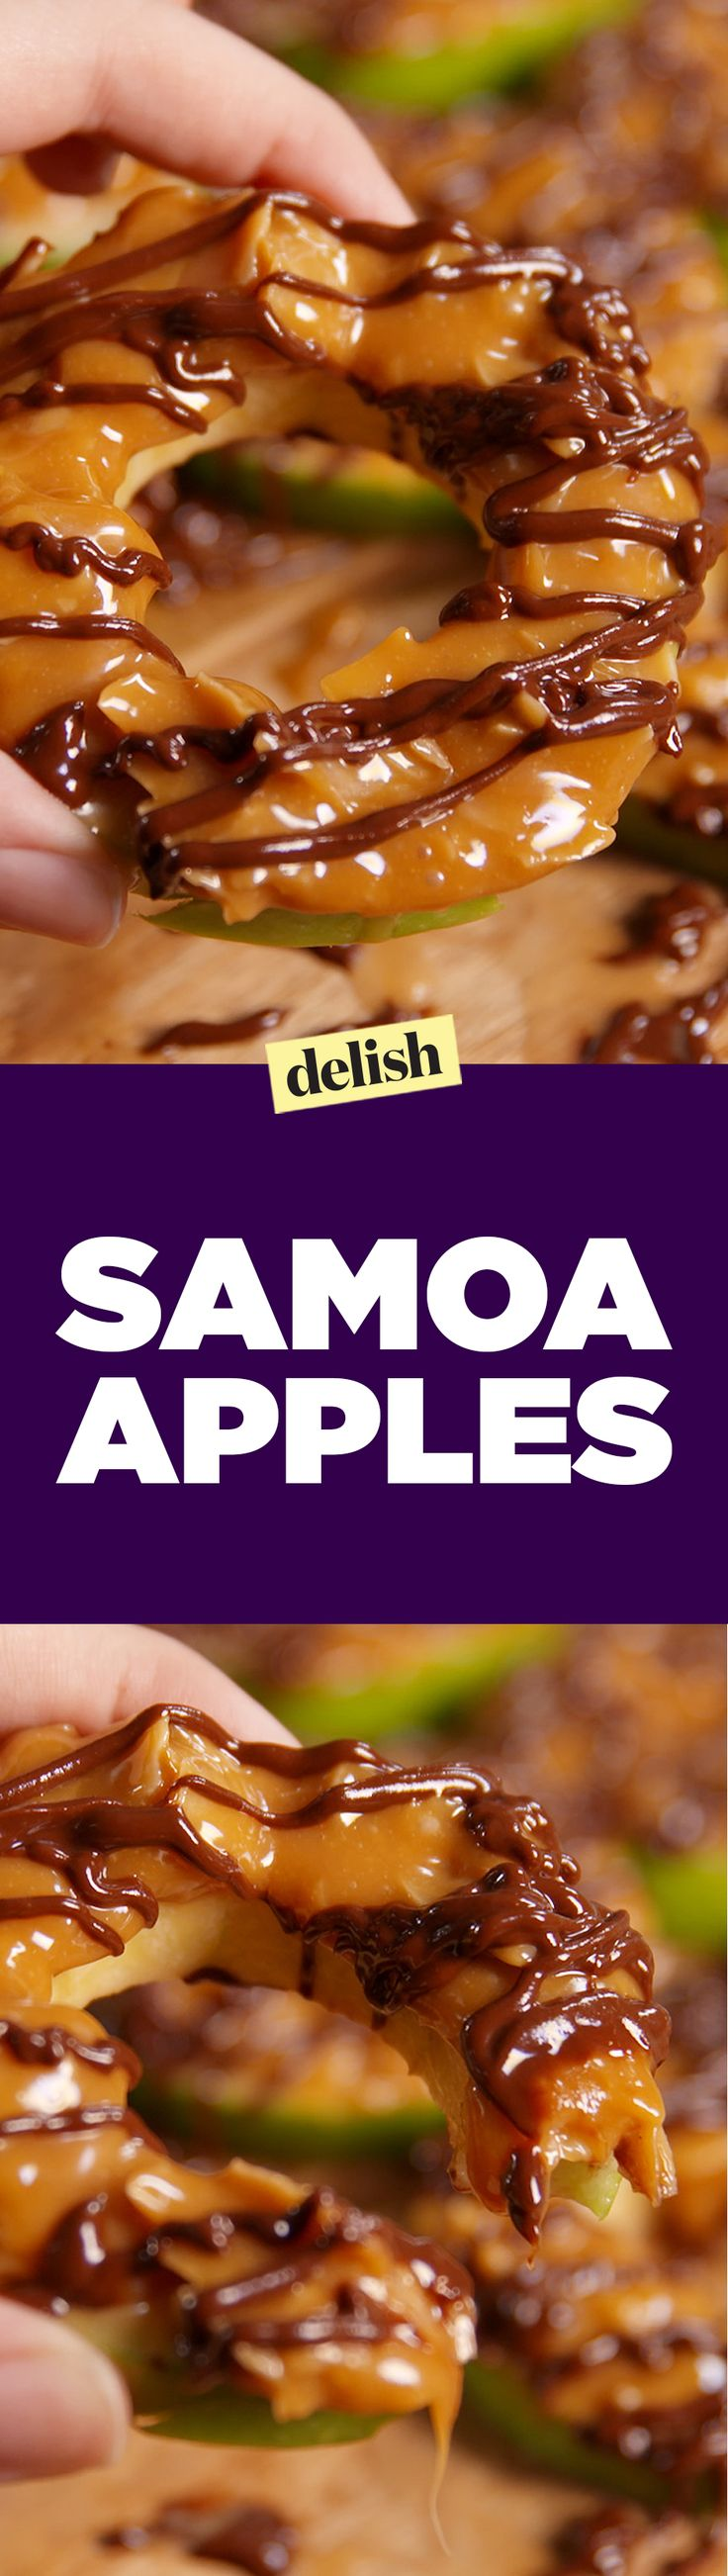 These samoa apple slices are like low-carb Girl Scouts cookies. Get the recipe on Delish.com.